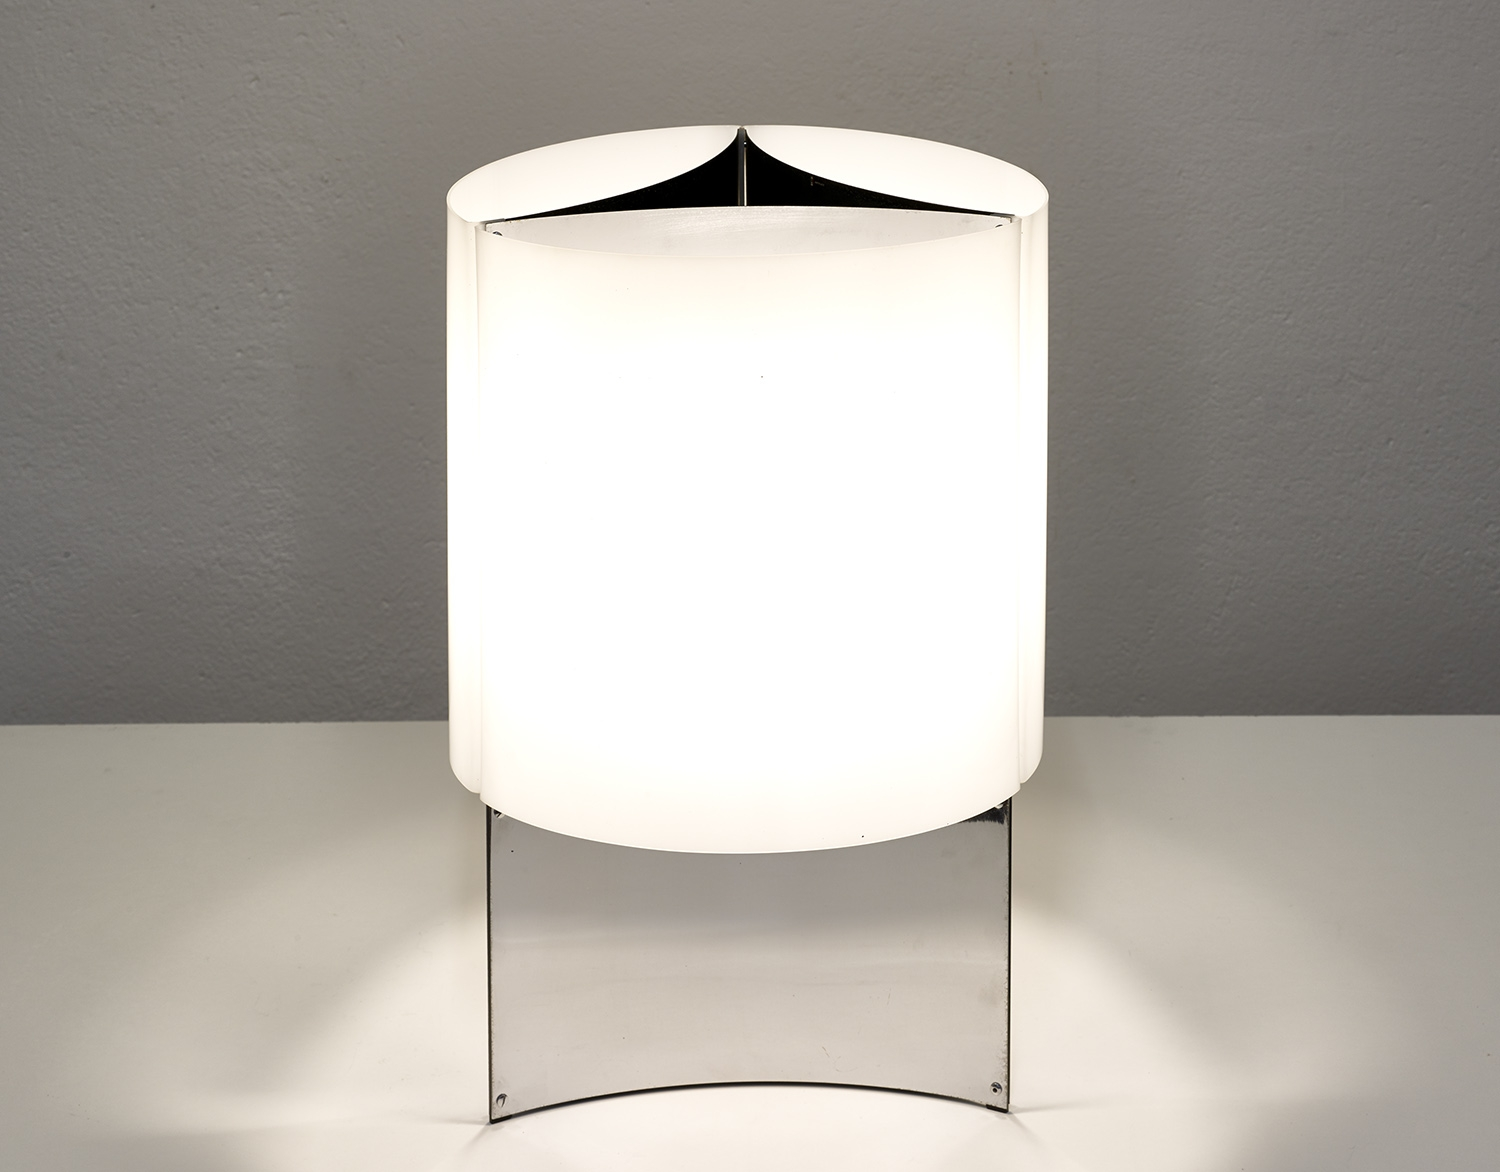 table-lamp-526g-by-lella-massimo-vignelli-for-arteluce-1965-image-02